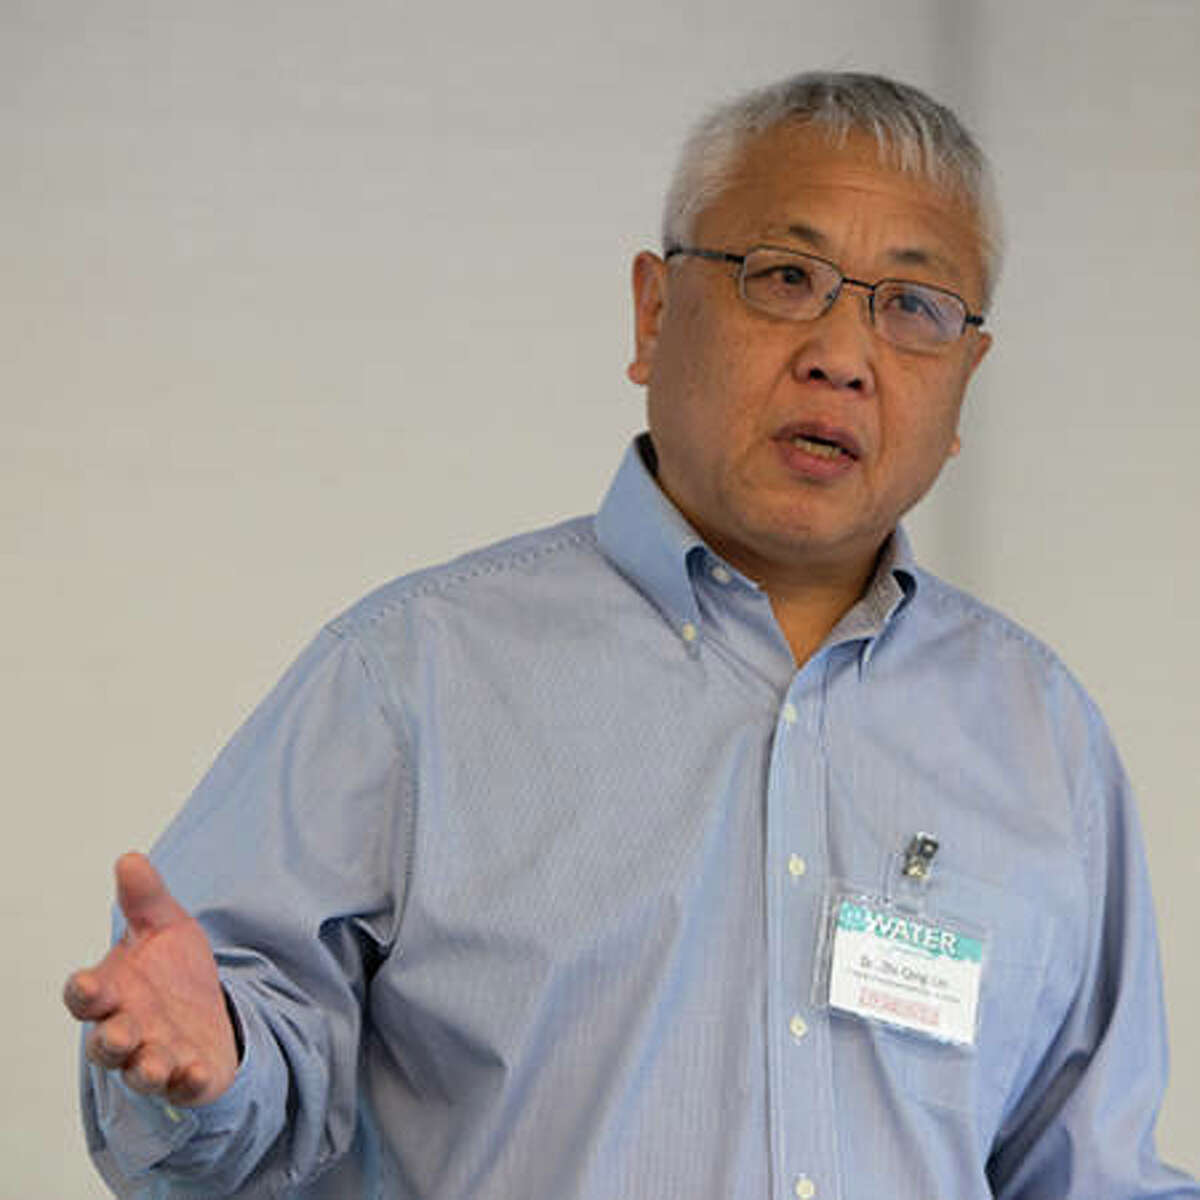 Zhi-Qing Lin, PhD, professor in SIUE's Department of Environmental Sciences, was one of several featured speakers at SIUE's inaugural Water Symposium.